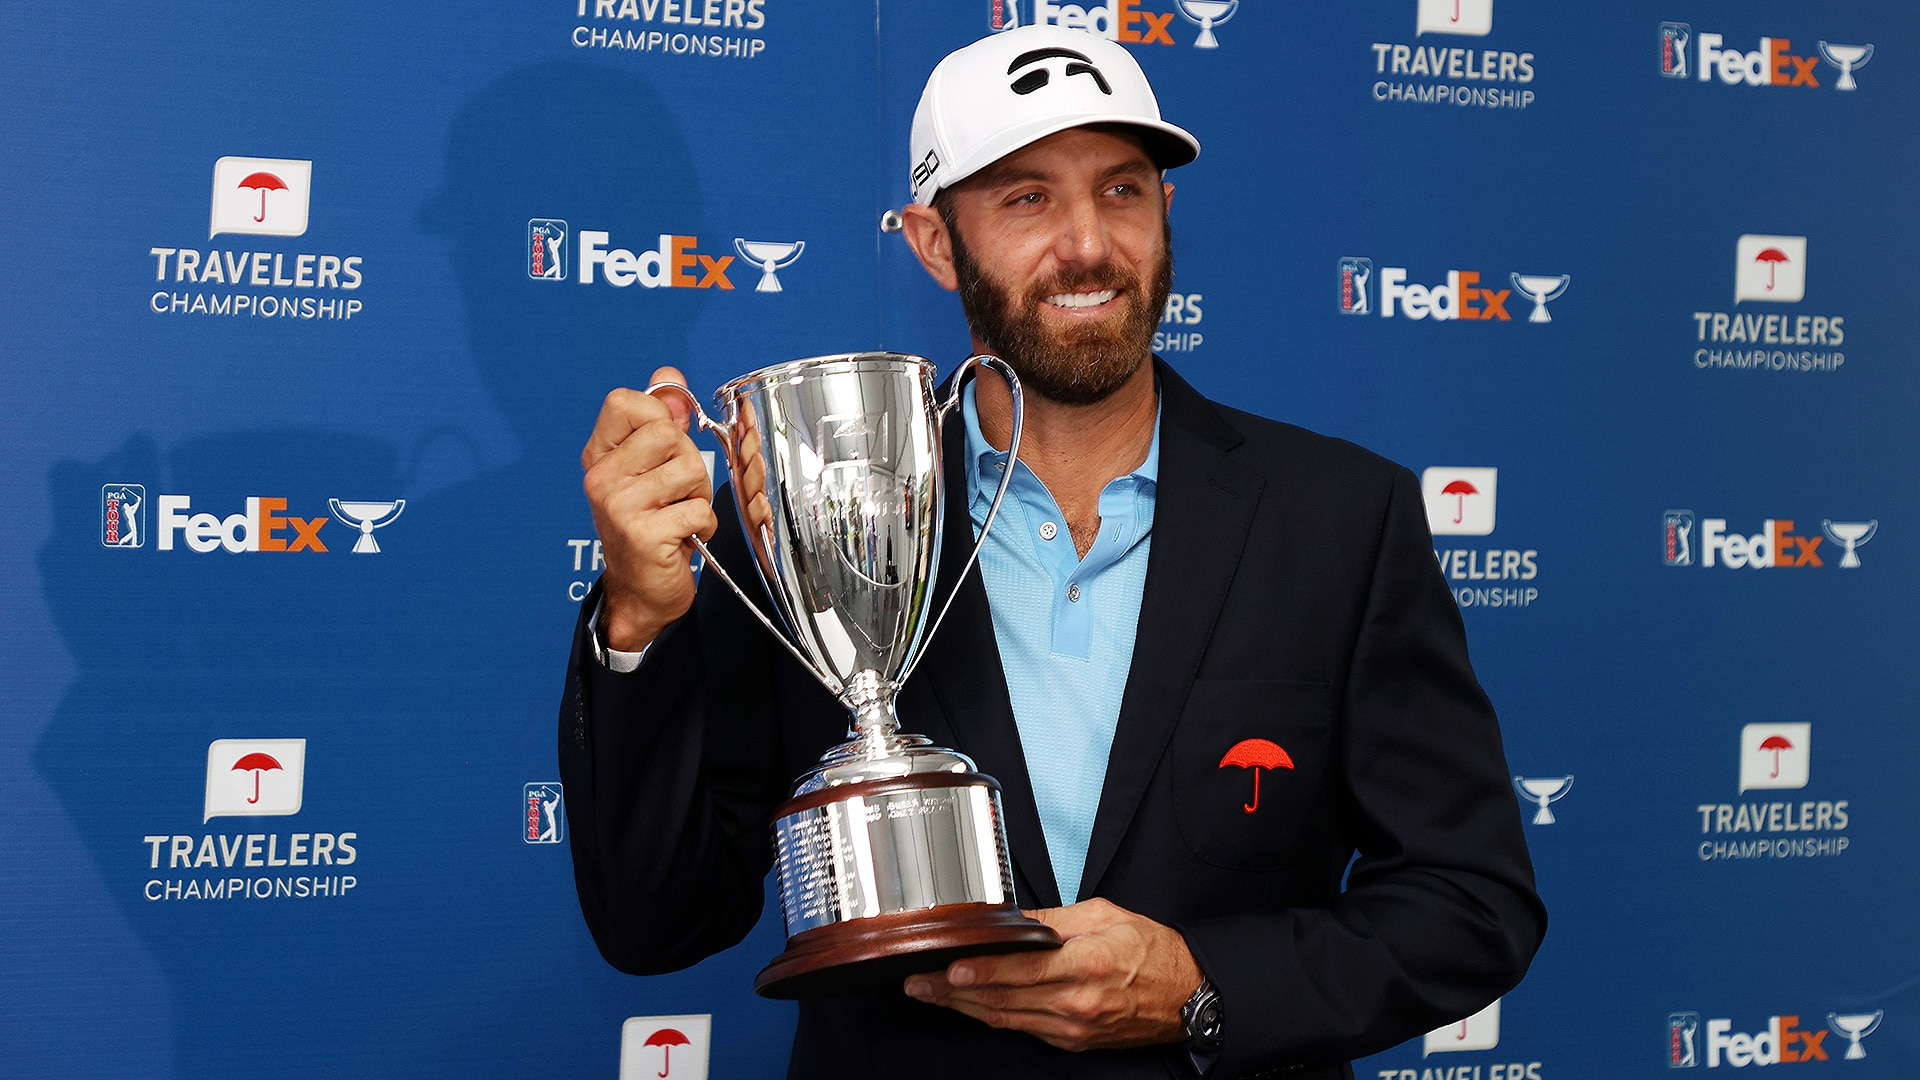 Dustin Johnson Travelers Championship